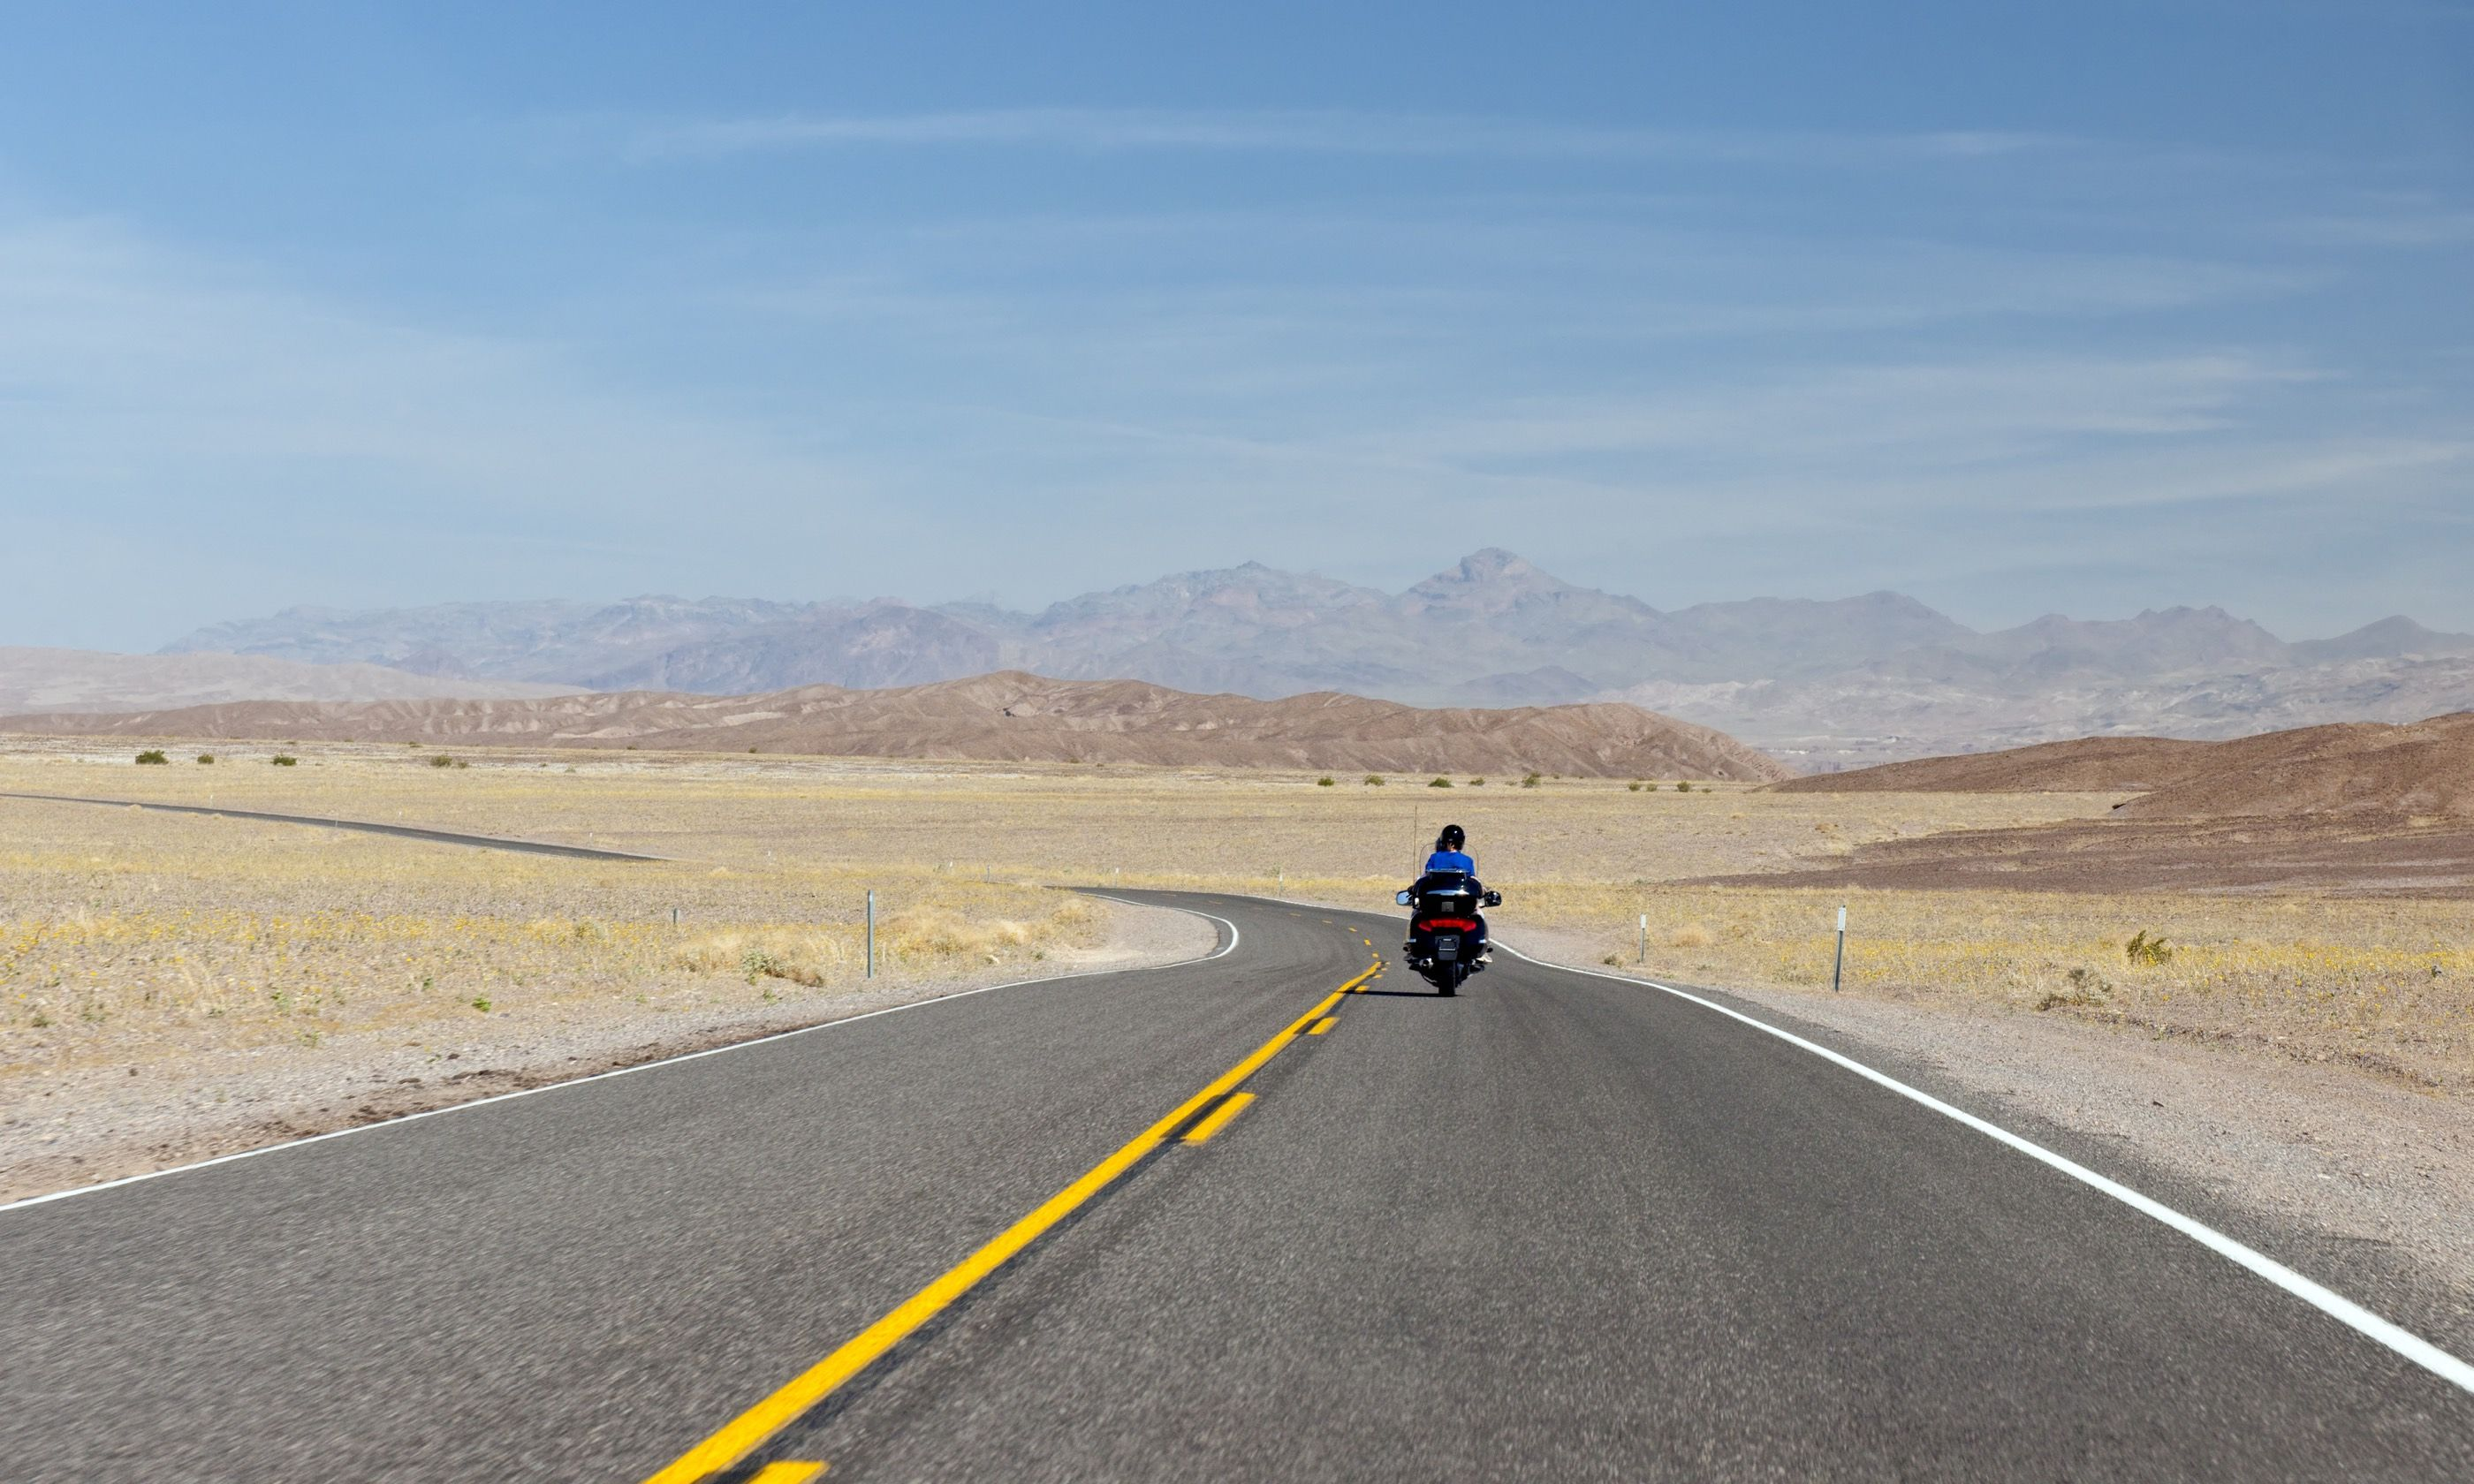 Motorcyclist in the Mojave desert (Dreamstime)